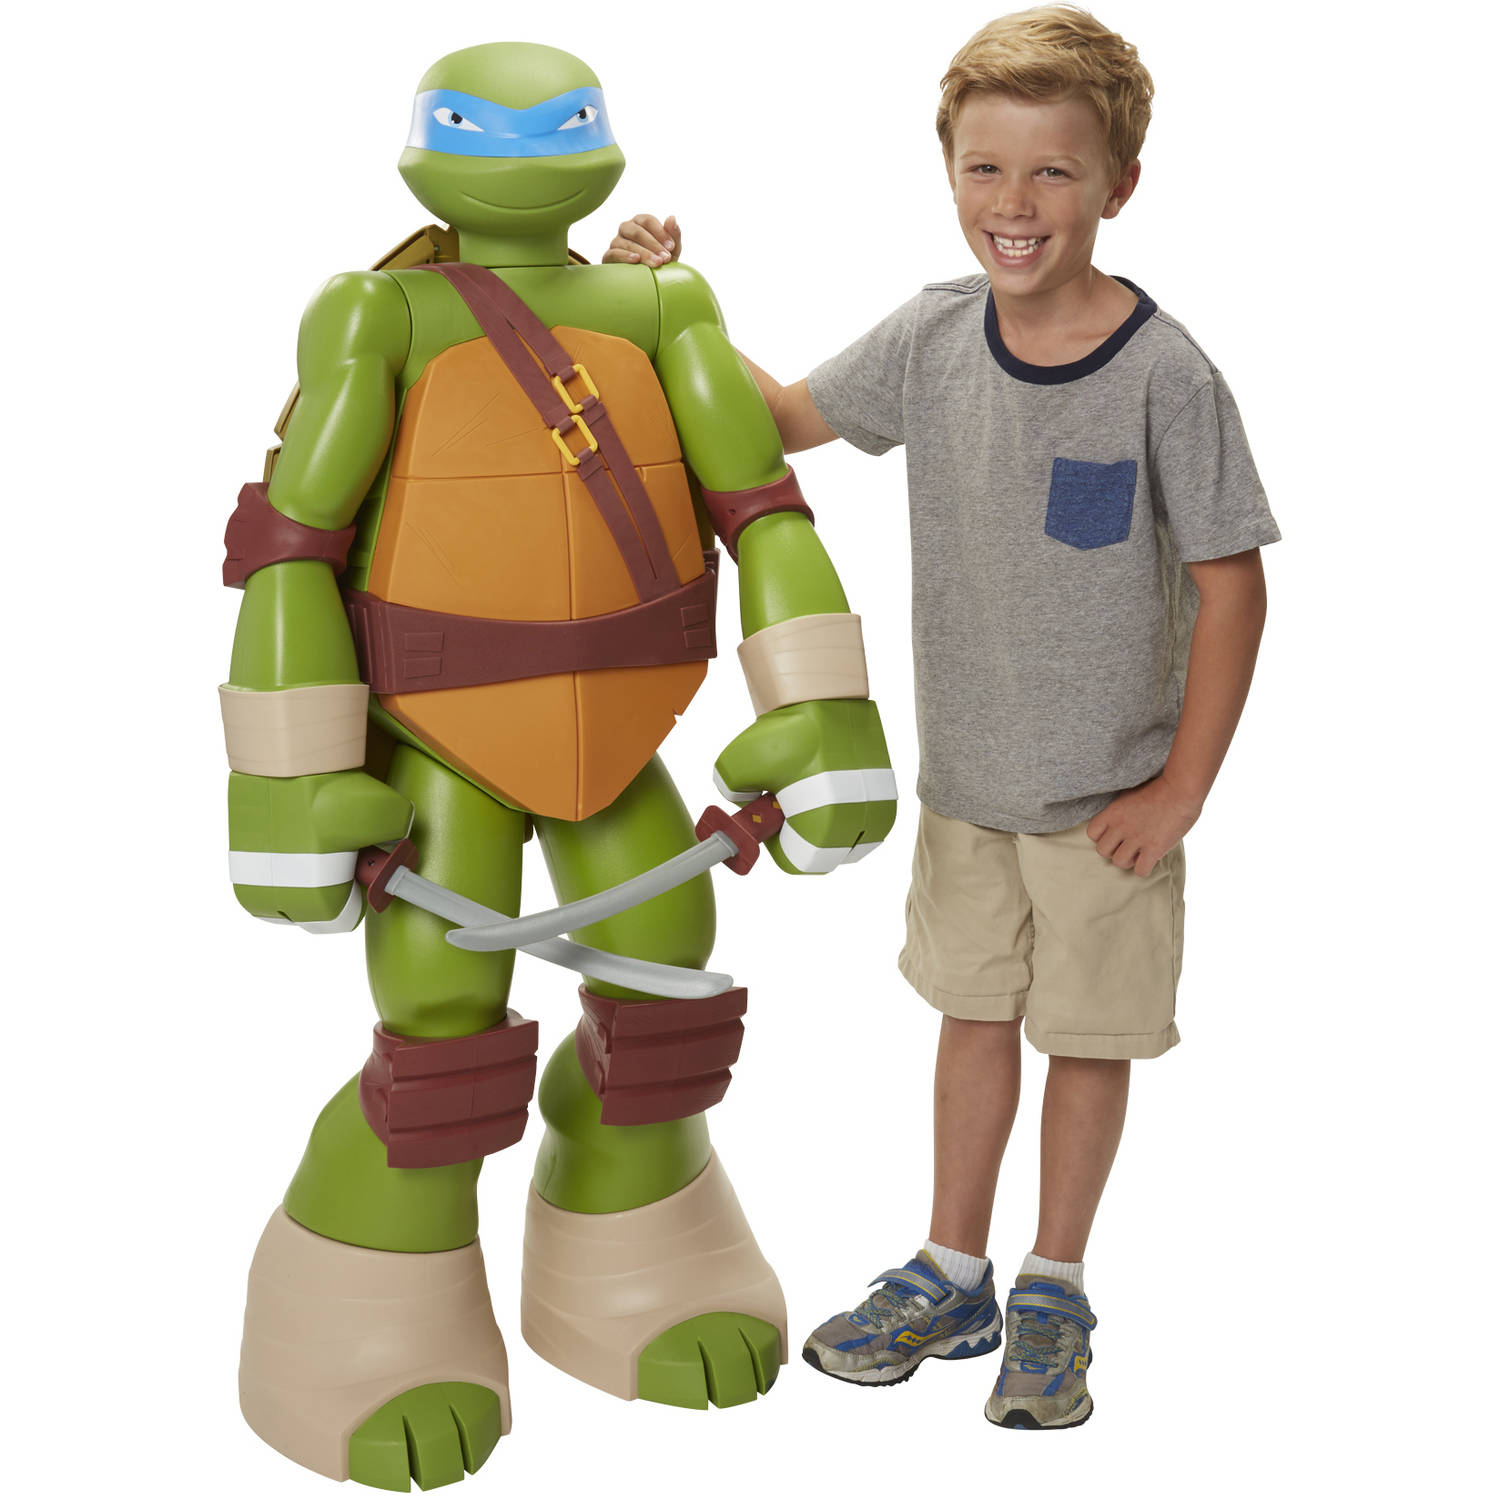 "Nickelodeon Teenage Mutant Ninja Turtles 48.5"" Figure, Leonardo"